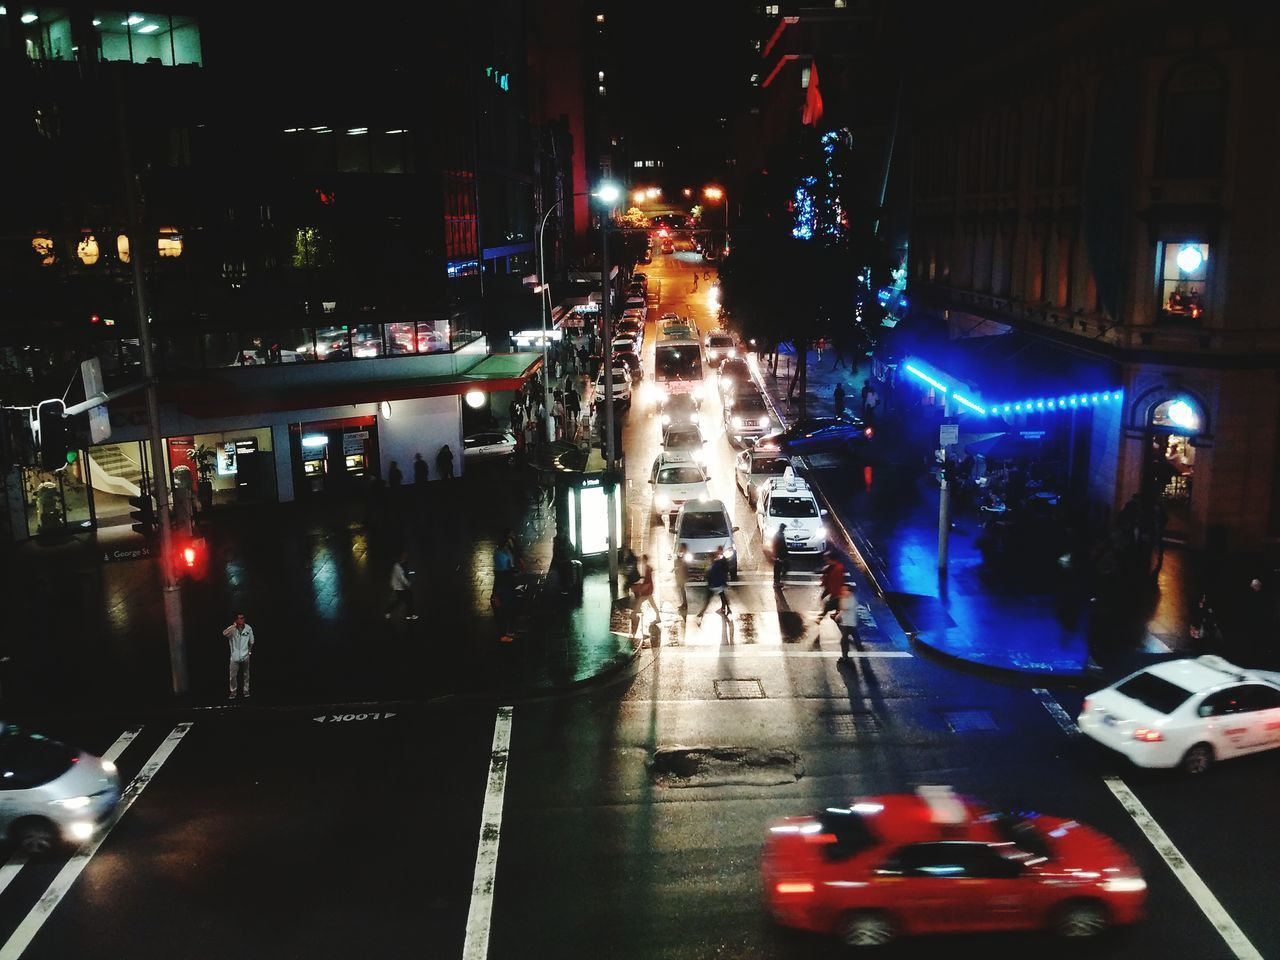 illuminated, night, transportation, mode of transport, city, land vehicle, car, building exterior, architecture, street, built structure, street light, city street, road, lighting equipment, traffic, city life, on the move, the way forward, high angle view